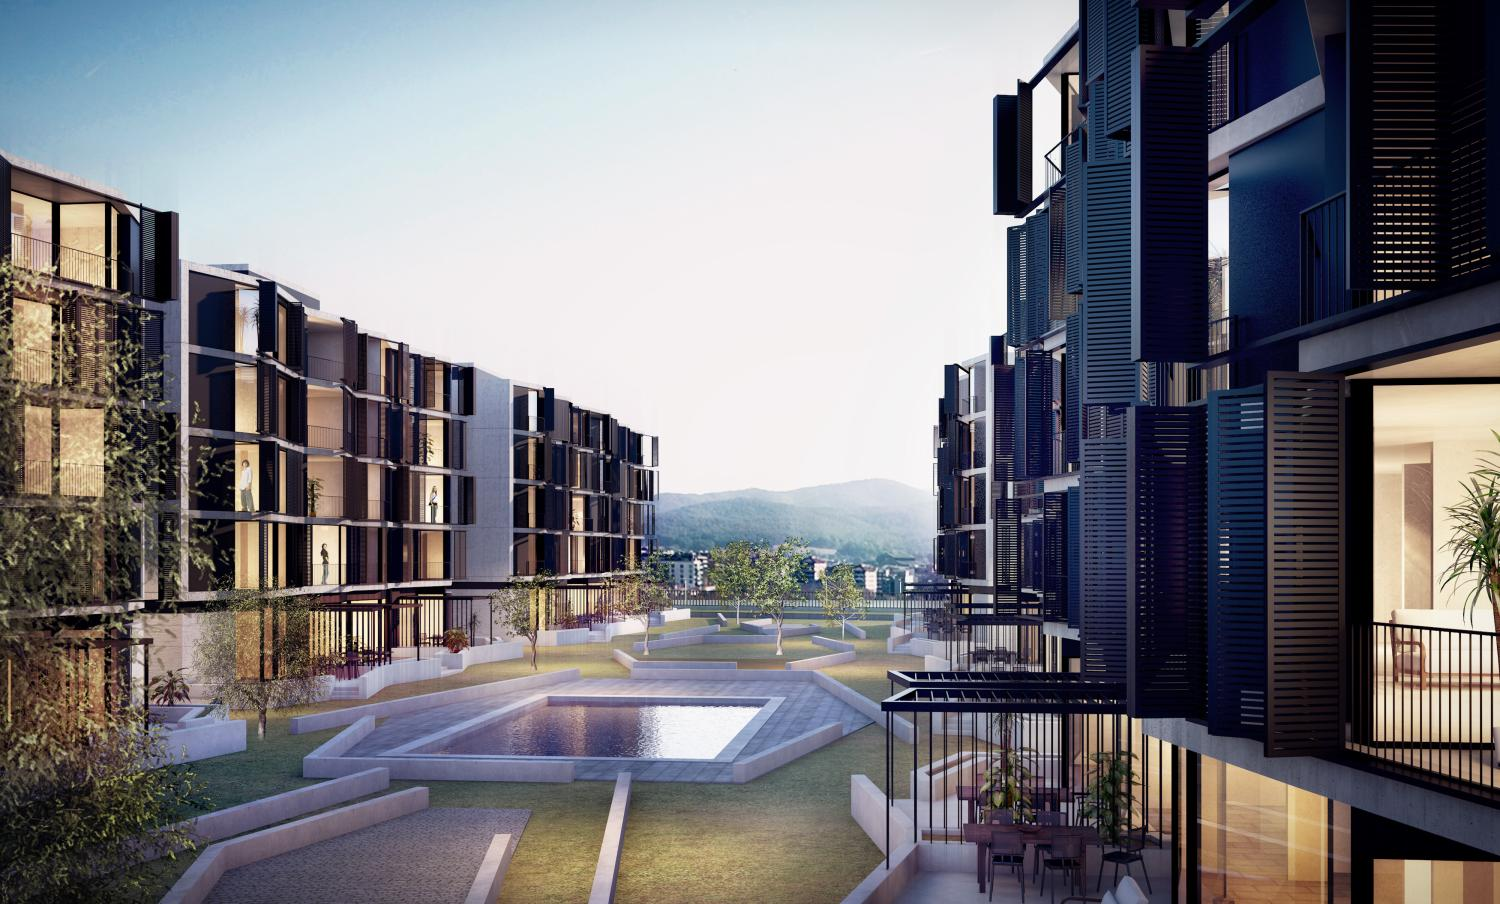 3D RENDERING FOR A HOUSING DEVELOPMENT COMPETITION